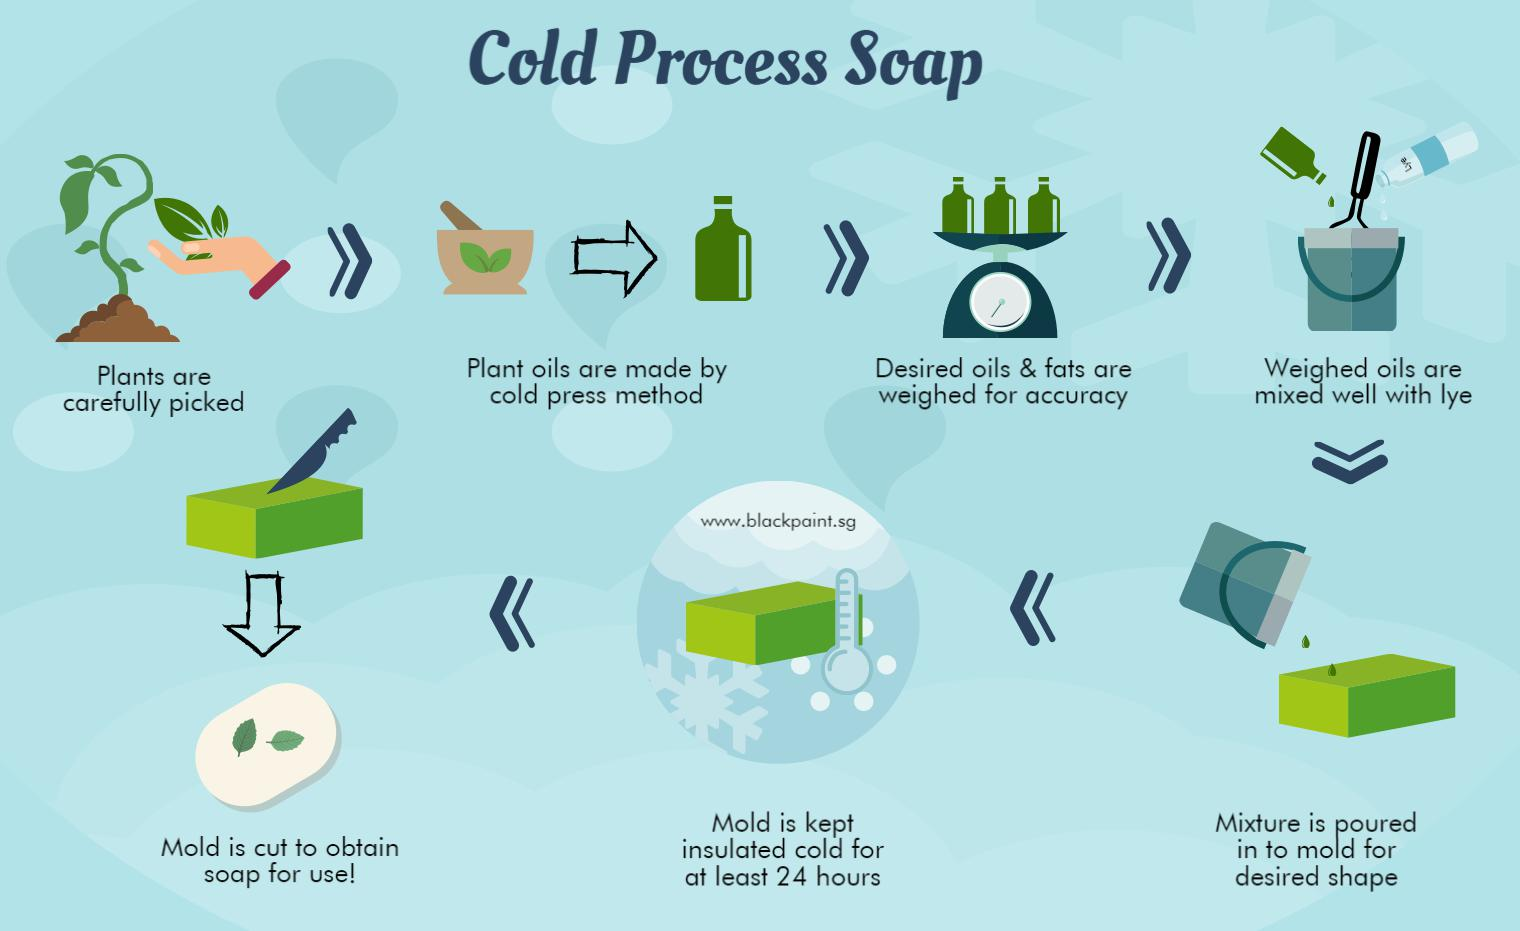 What is Cold Process Soap and How is Cold Process Soap Made